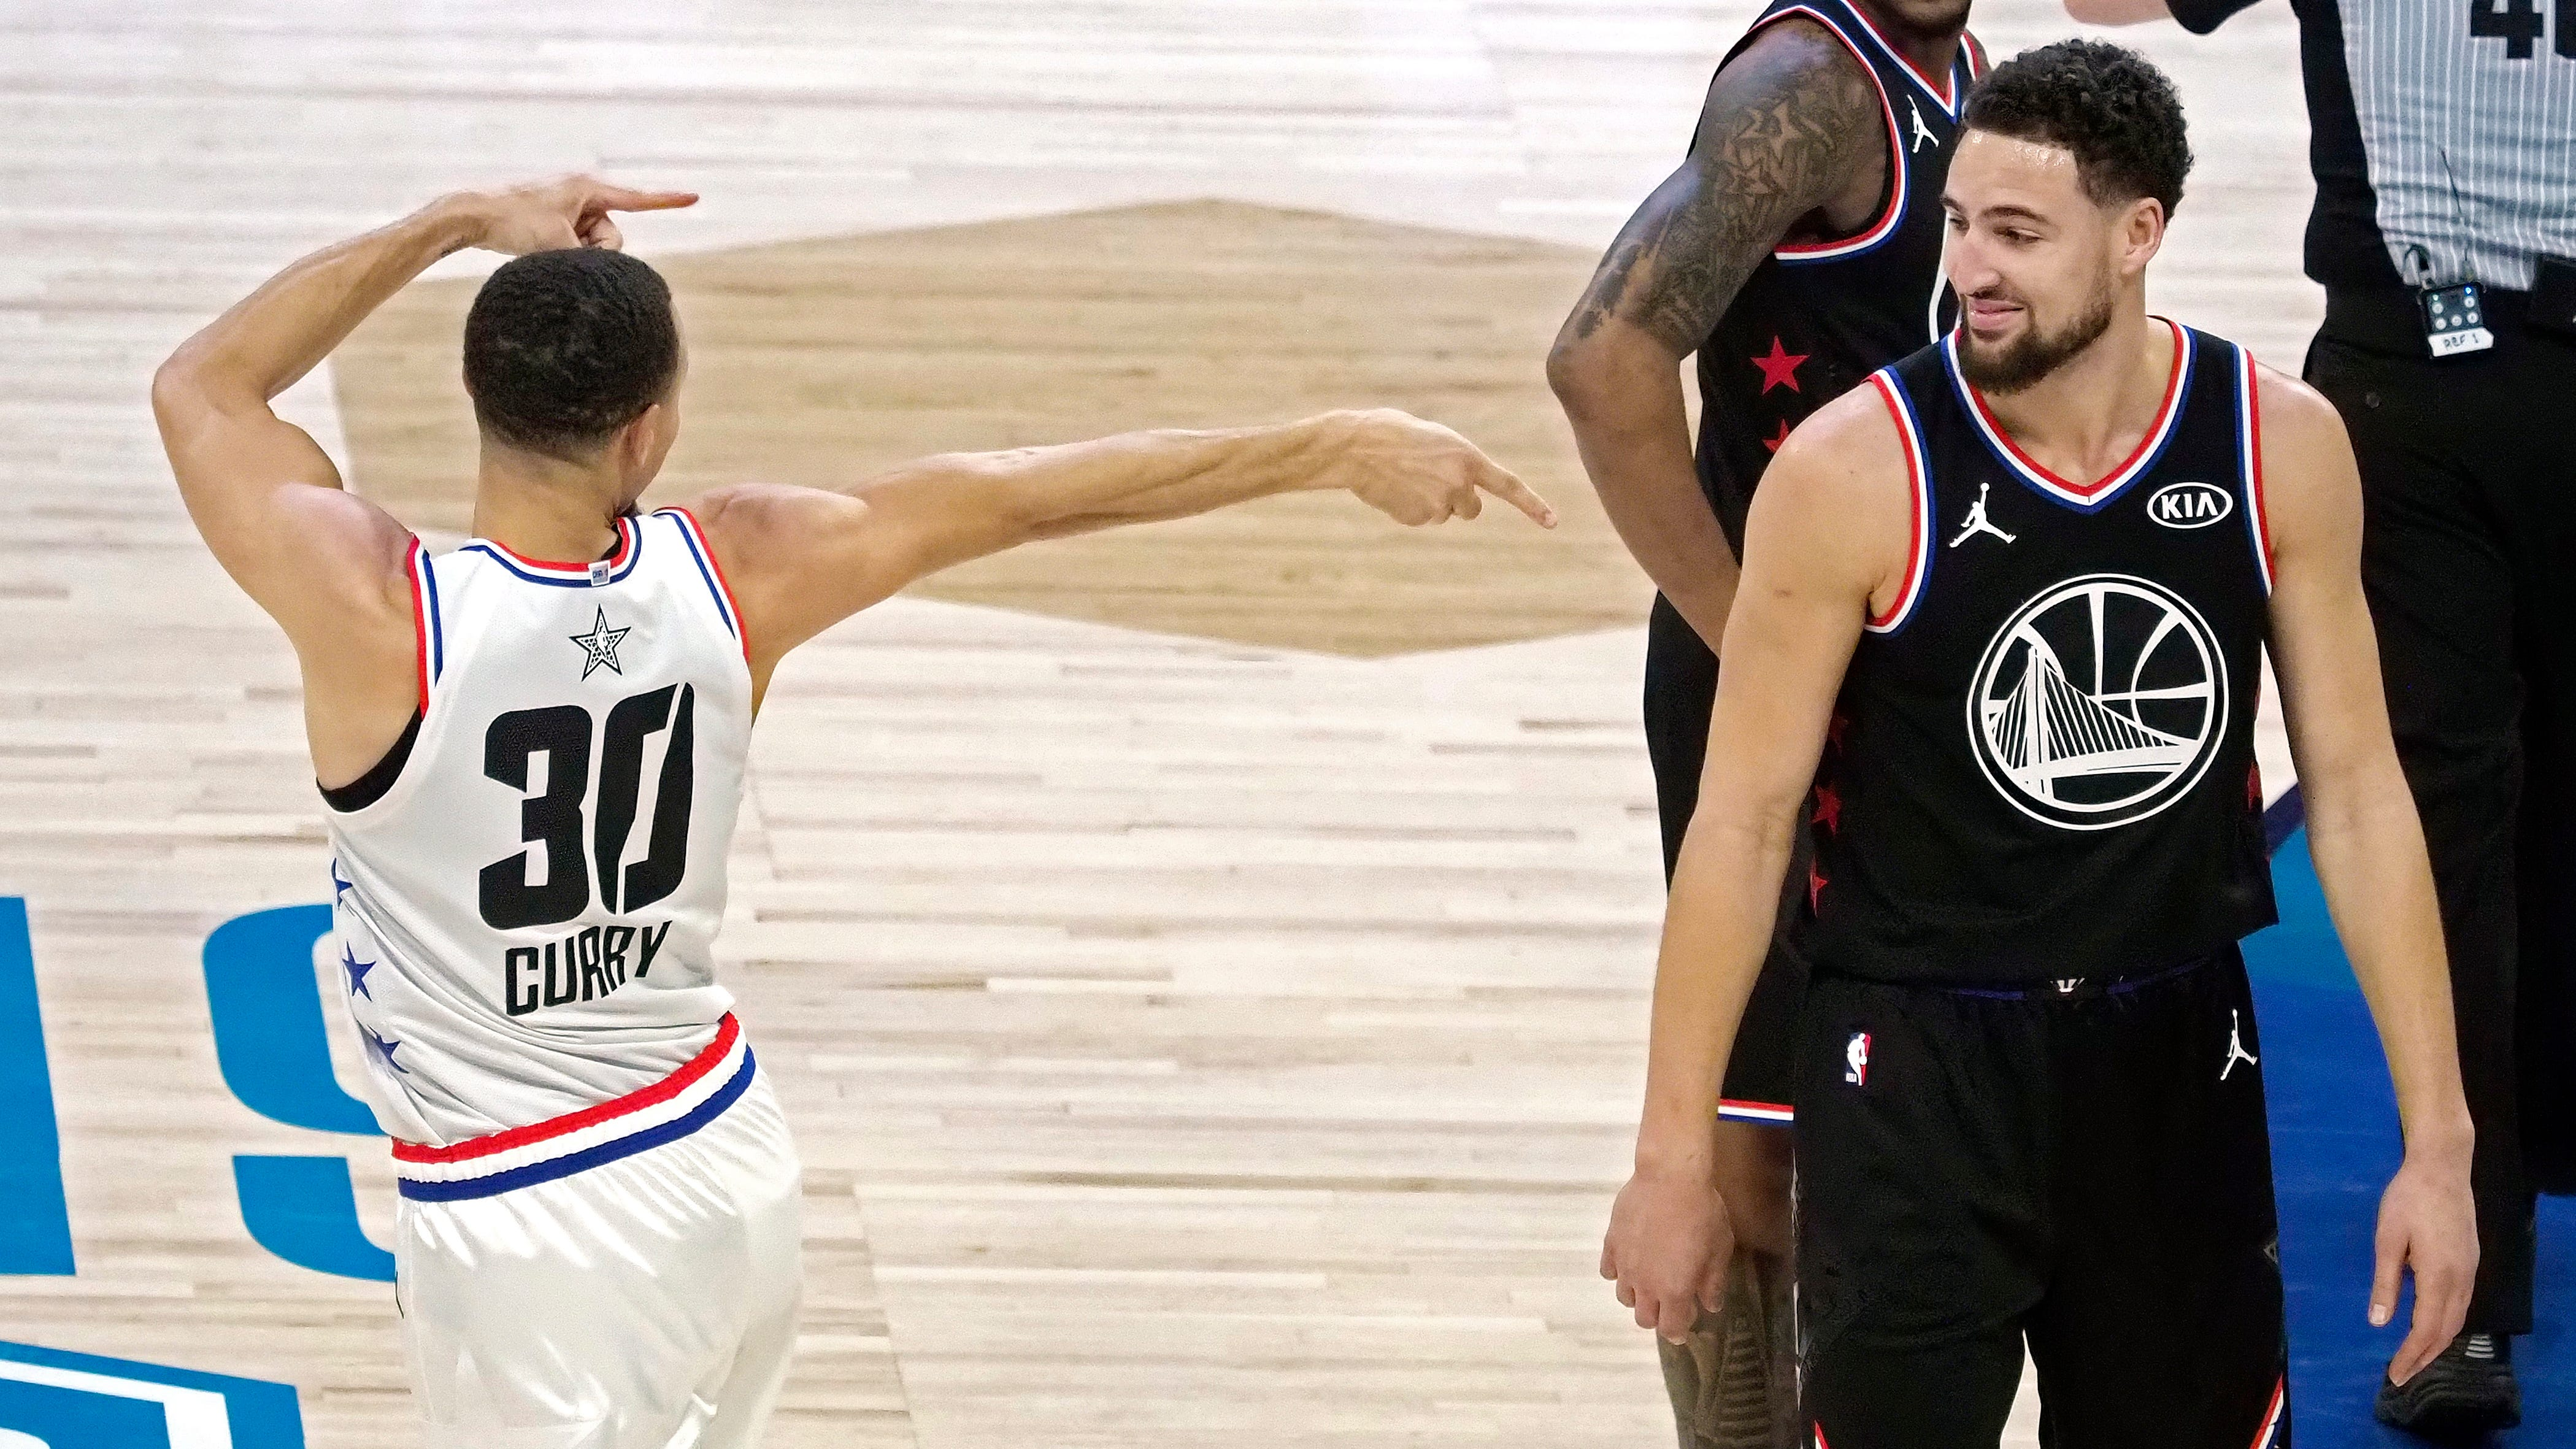 Stephen Curry points at Klay Thompson after being fouled during the NBA All-Star Game.